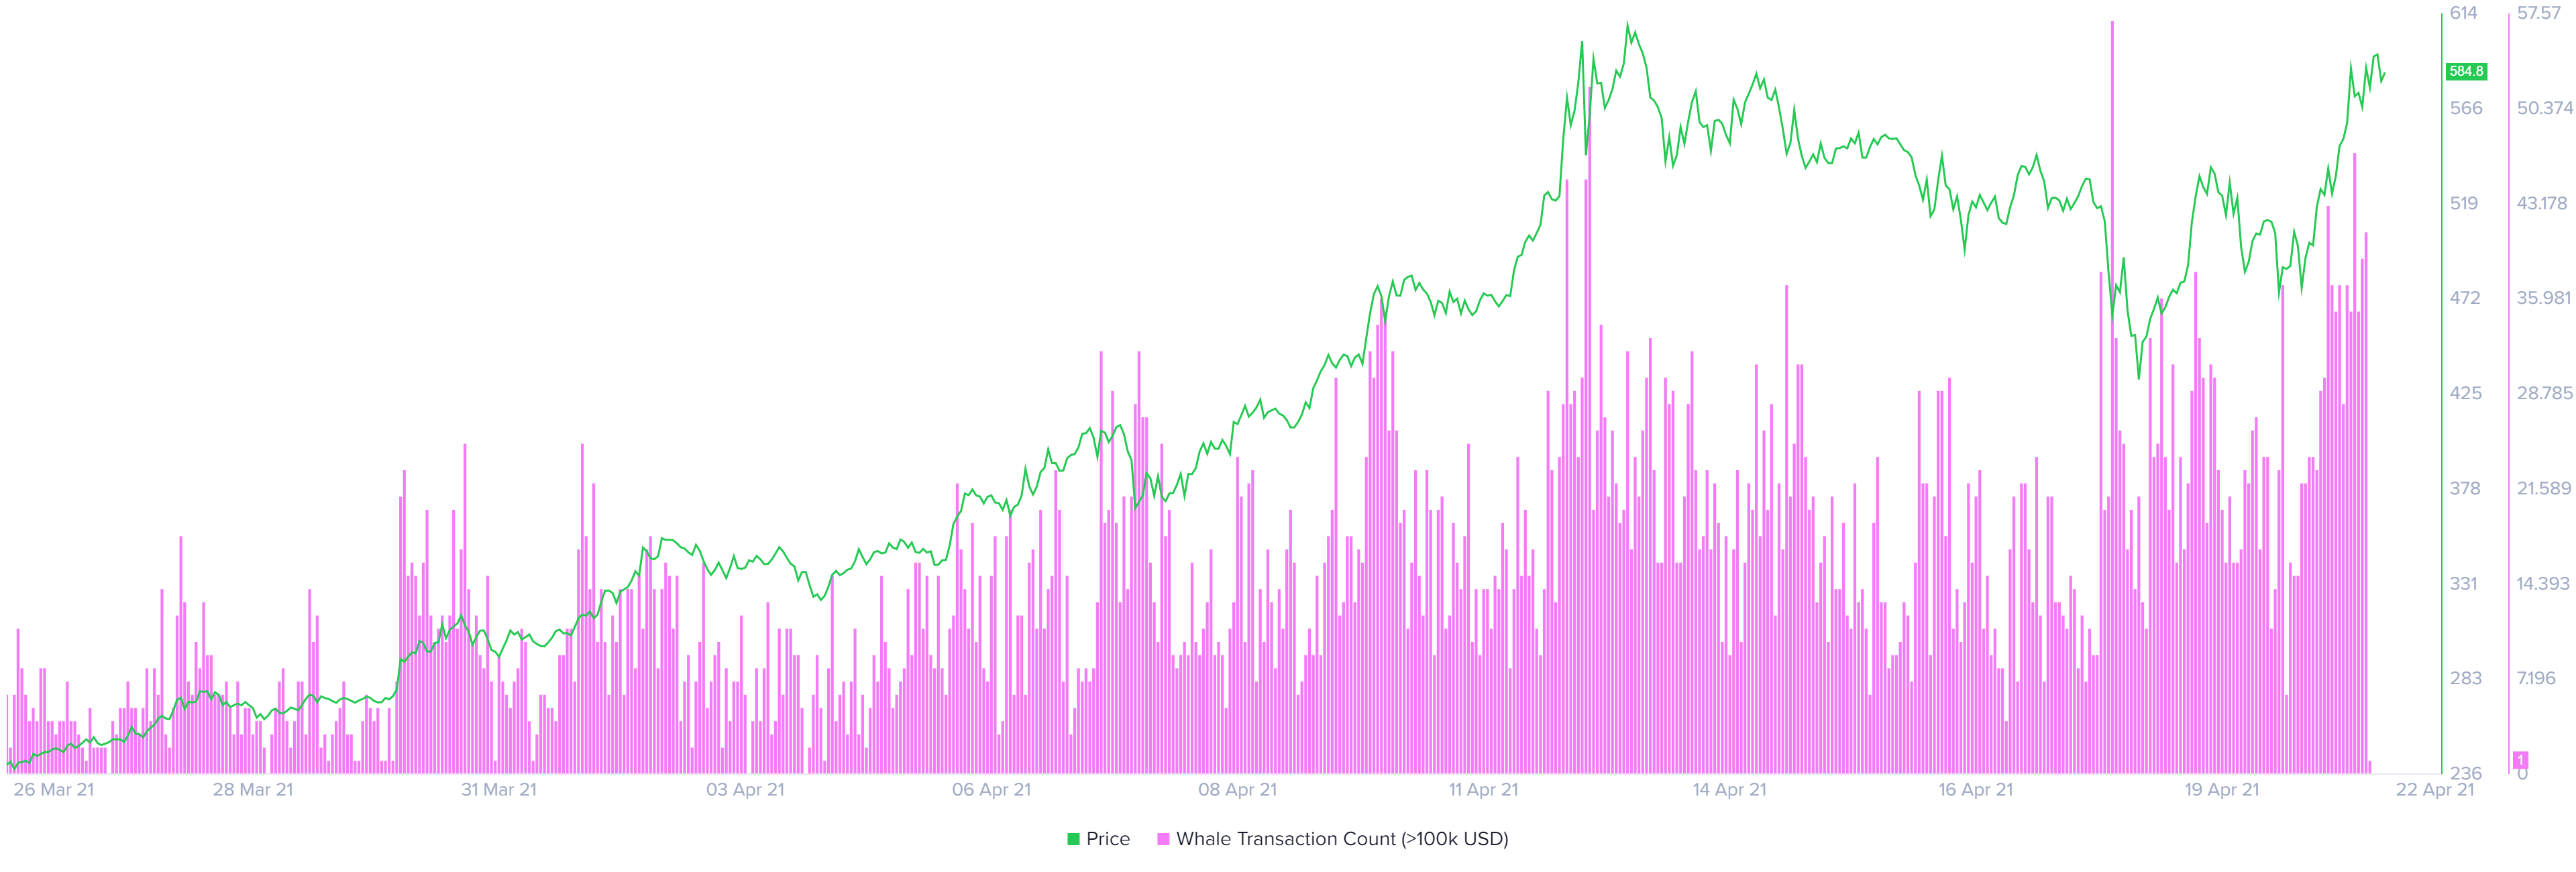 BNB whale transaction count chart